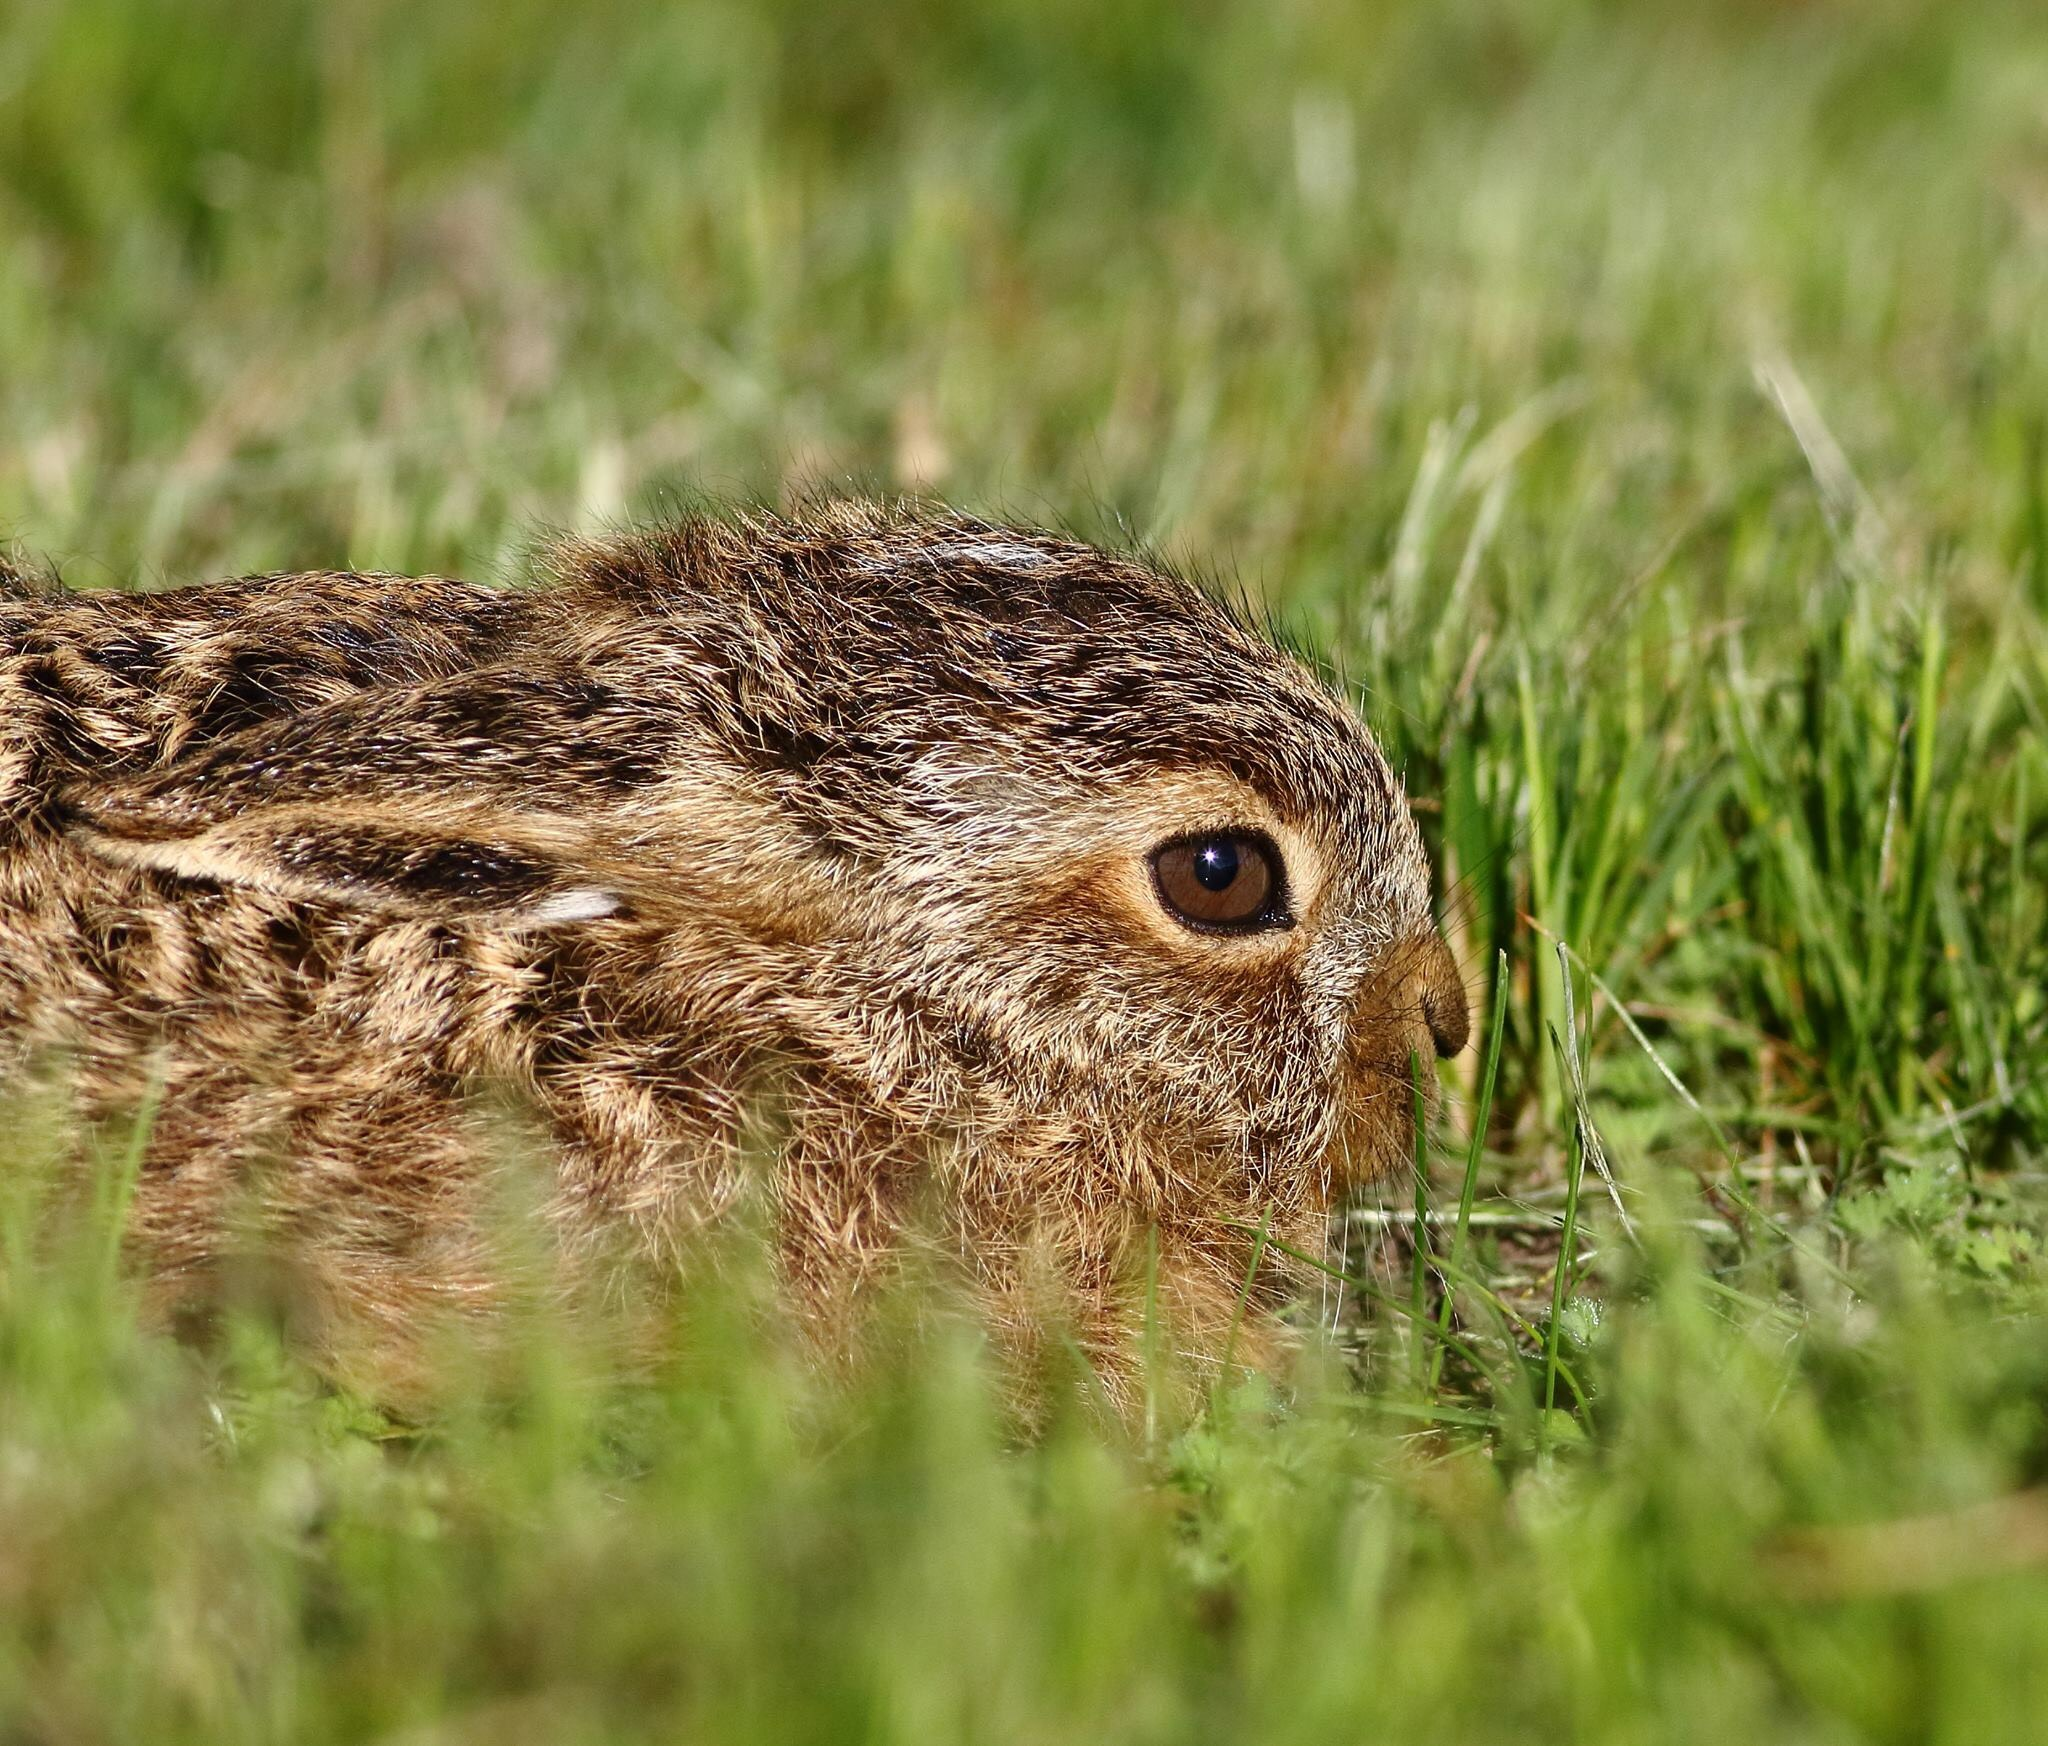 young hare by Mary Hartney